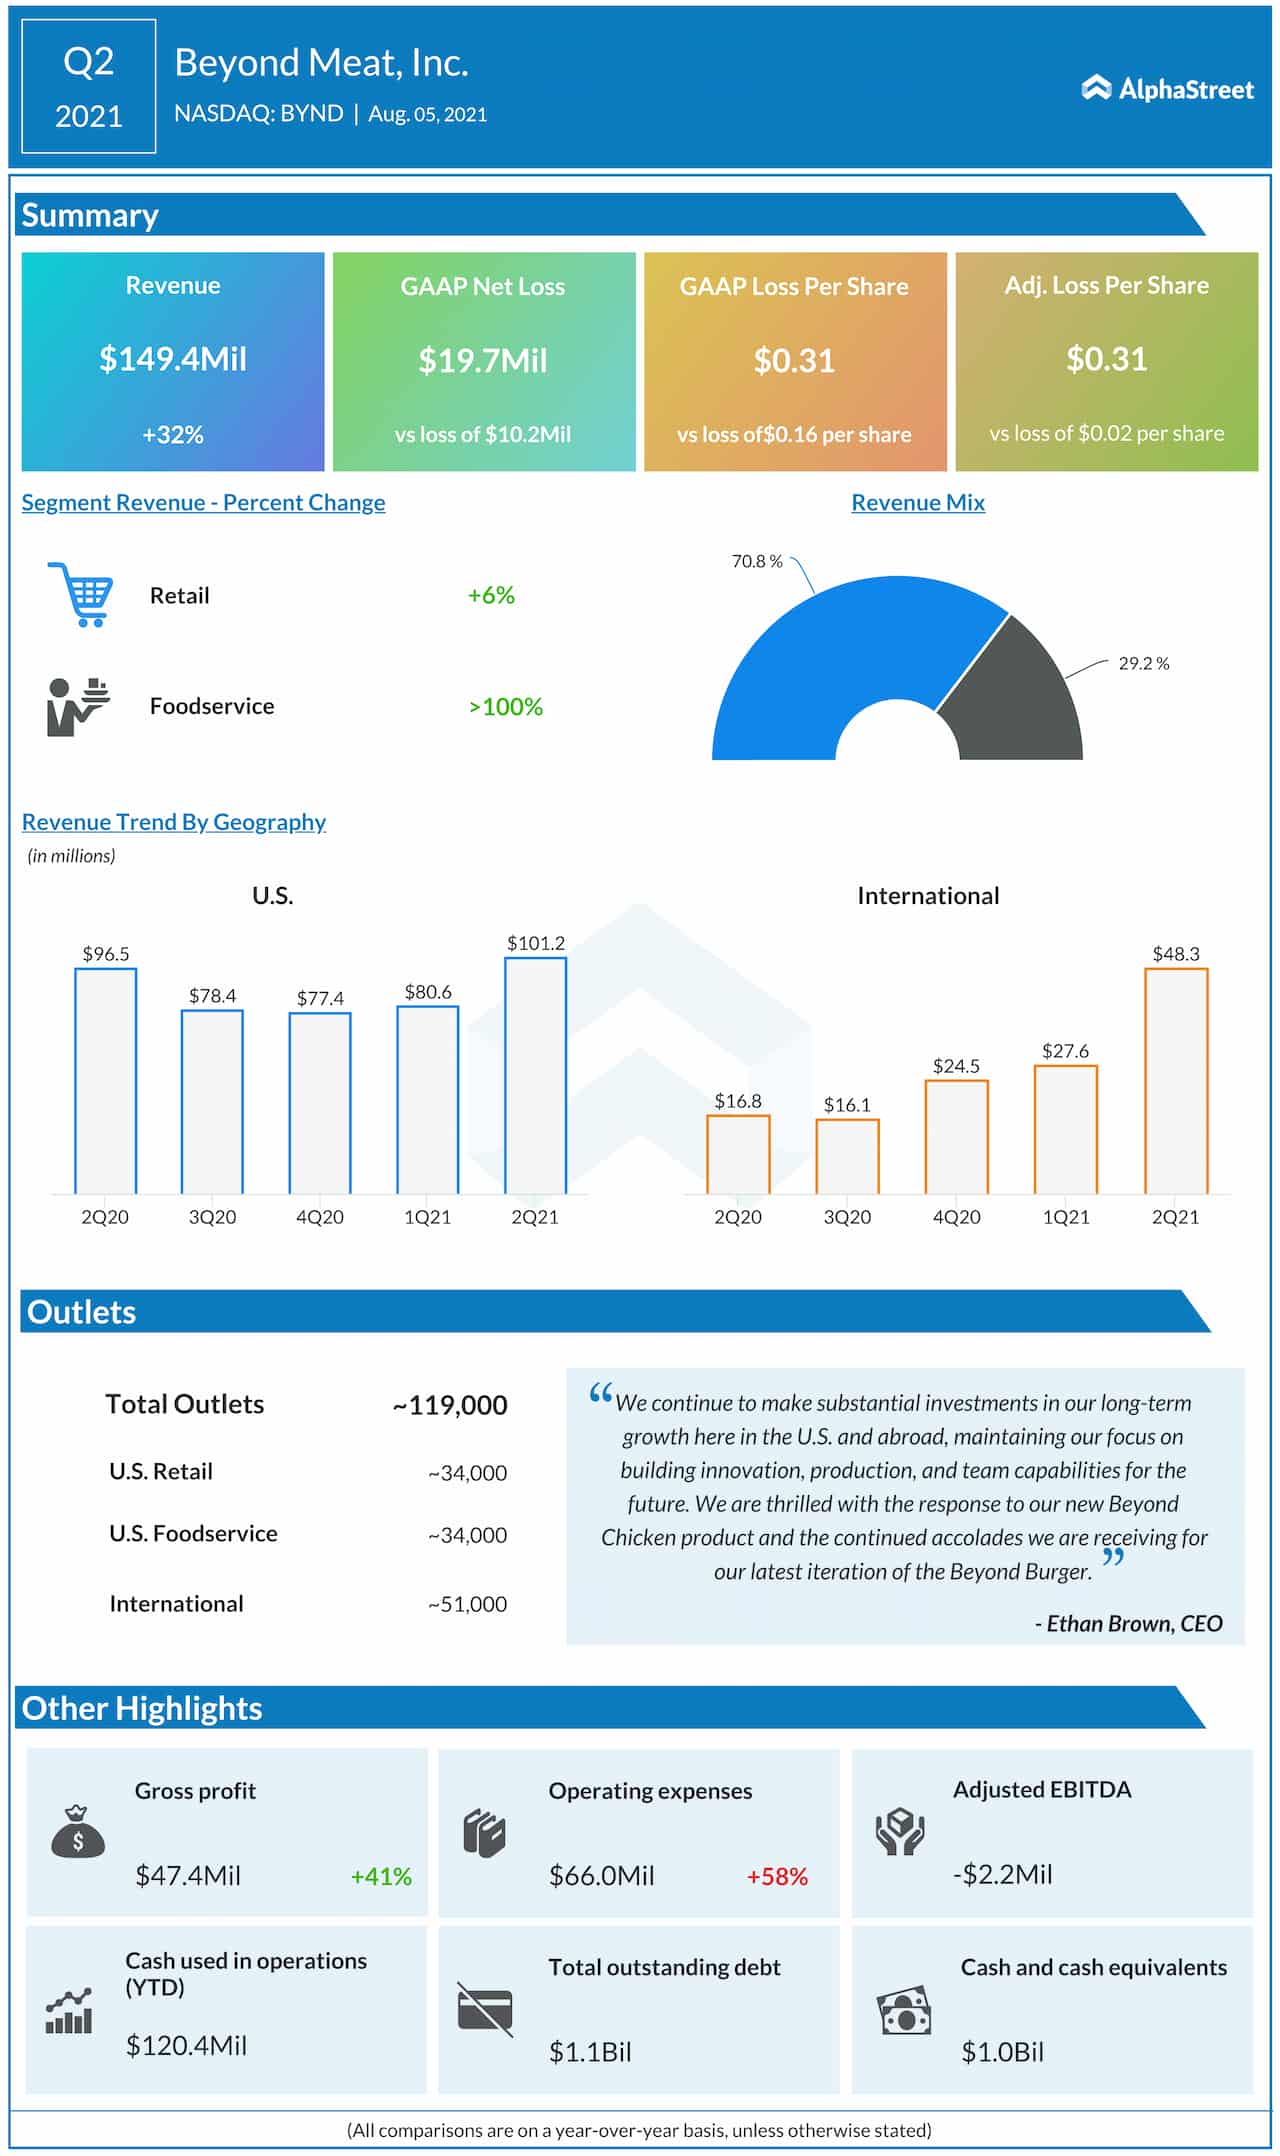 Beyond Meat Q2 2021 earnings infographic